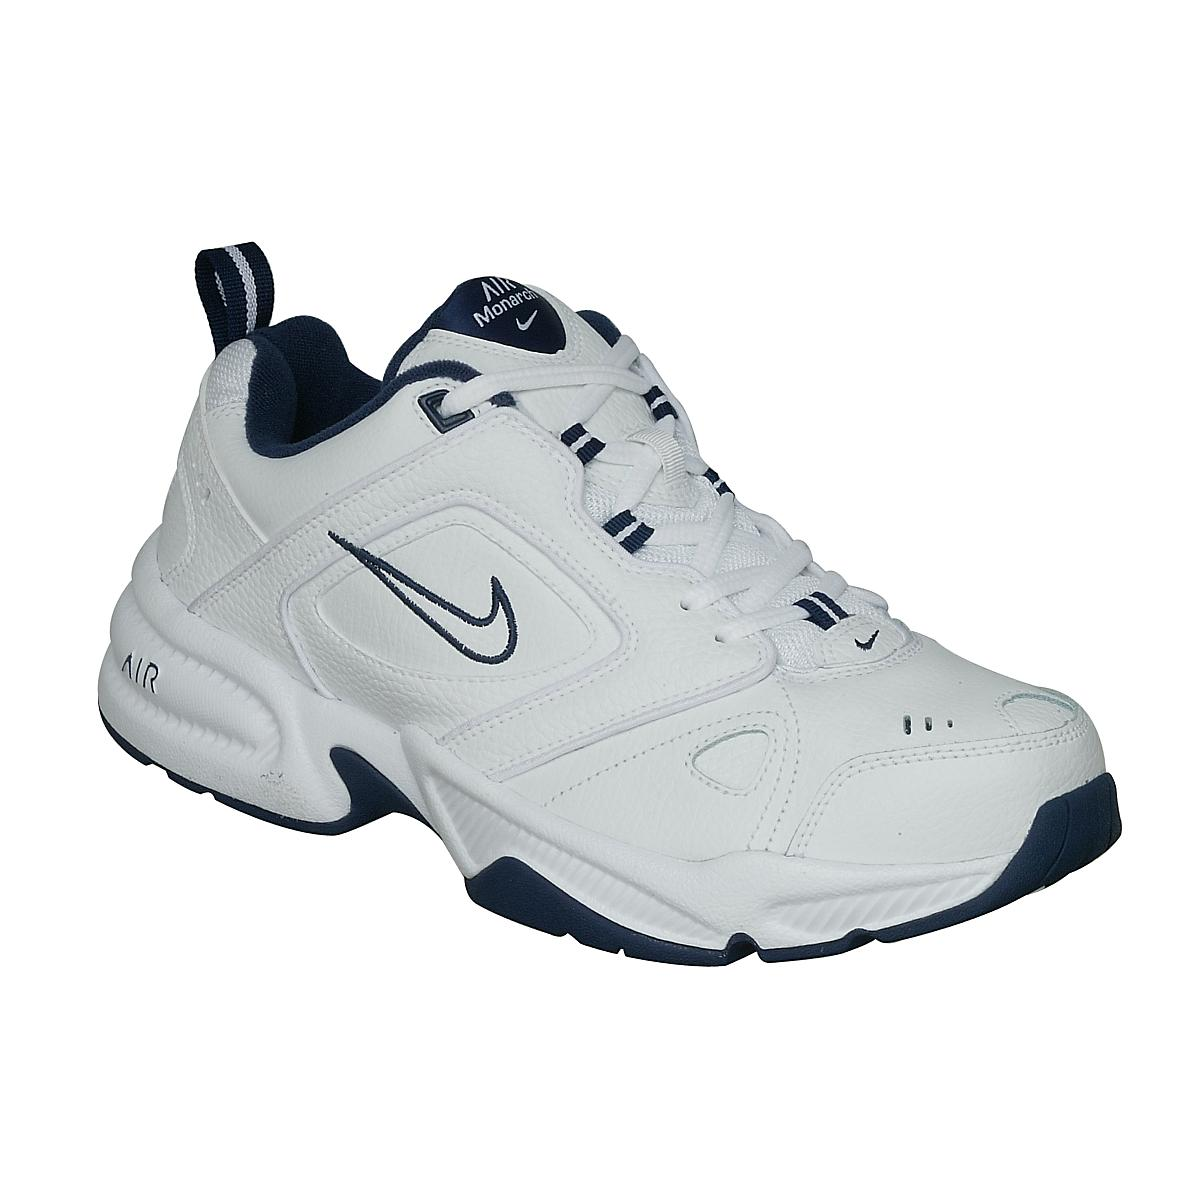 Mens Nike Air Monarch II Cross Training Shoe at Road Runner Sports f540cd925